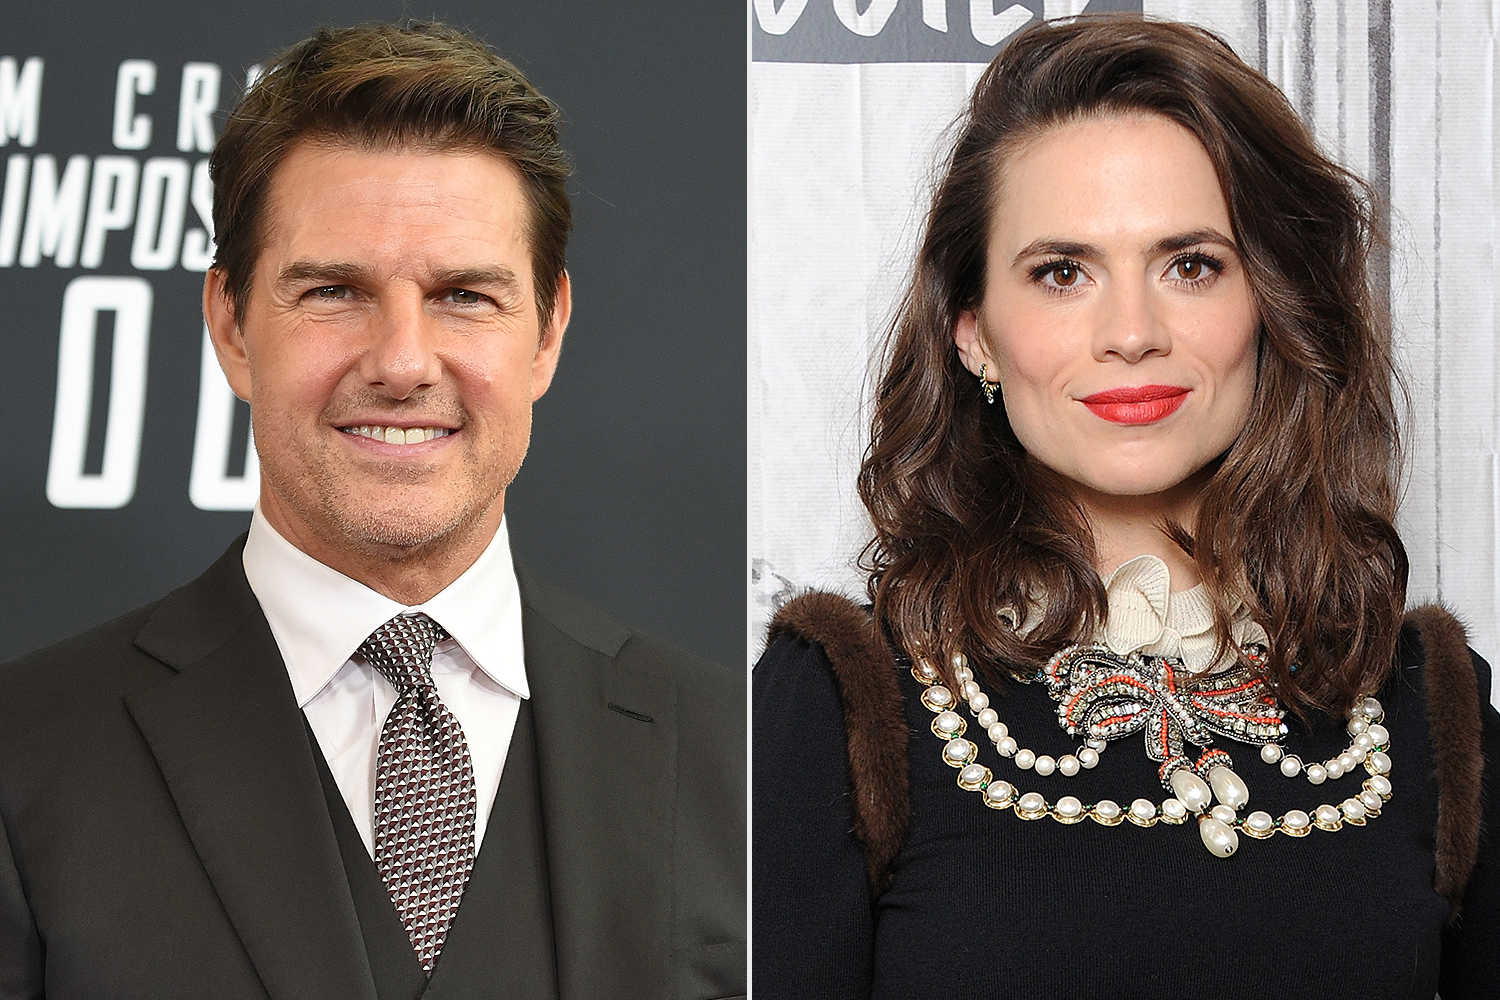 Tom Cruise And Hailey Atwell Marriage? Tom Cruise Ready for a Fourth Marriage?